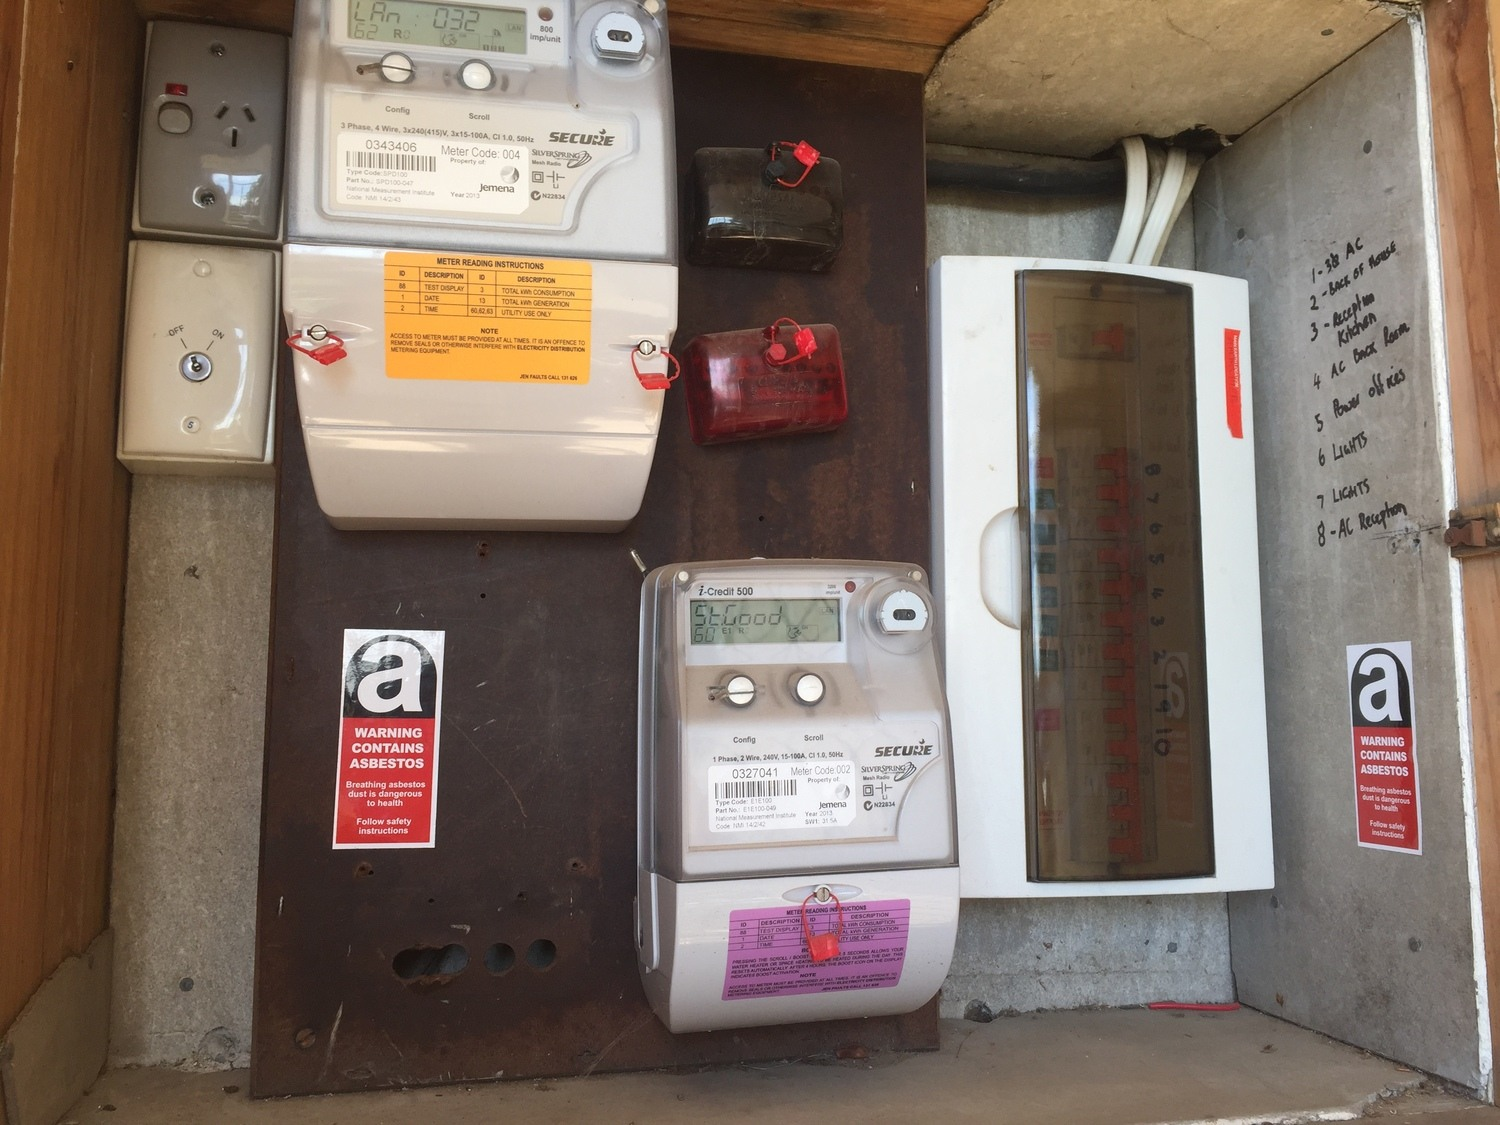 An asbestos inspection must account for the electrical boxes and backing boards. This electrical cupboard has asbestos cement lining materials and an asbestos containing backing board. Electricians must be made aware of any asbestos materials like this on your site.